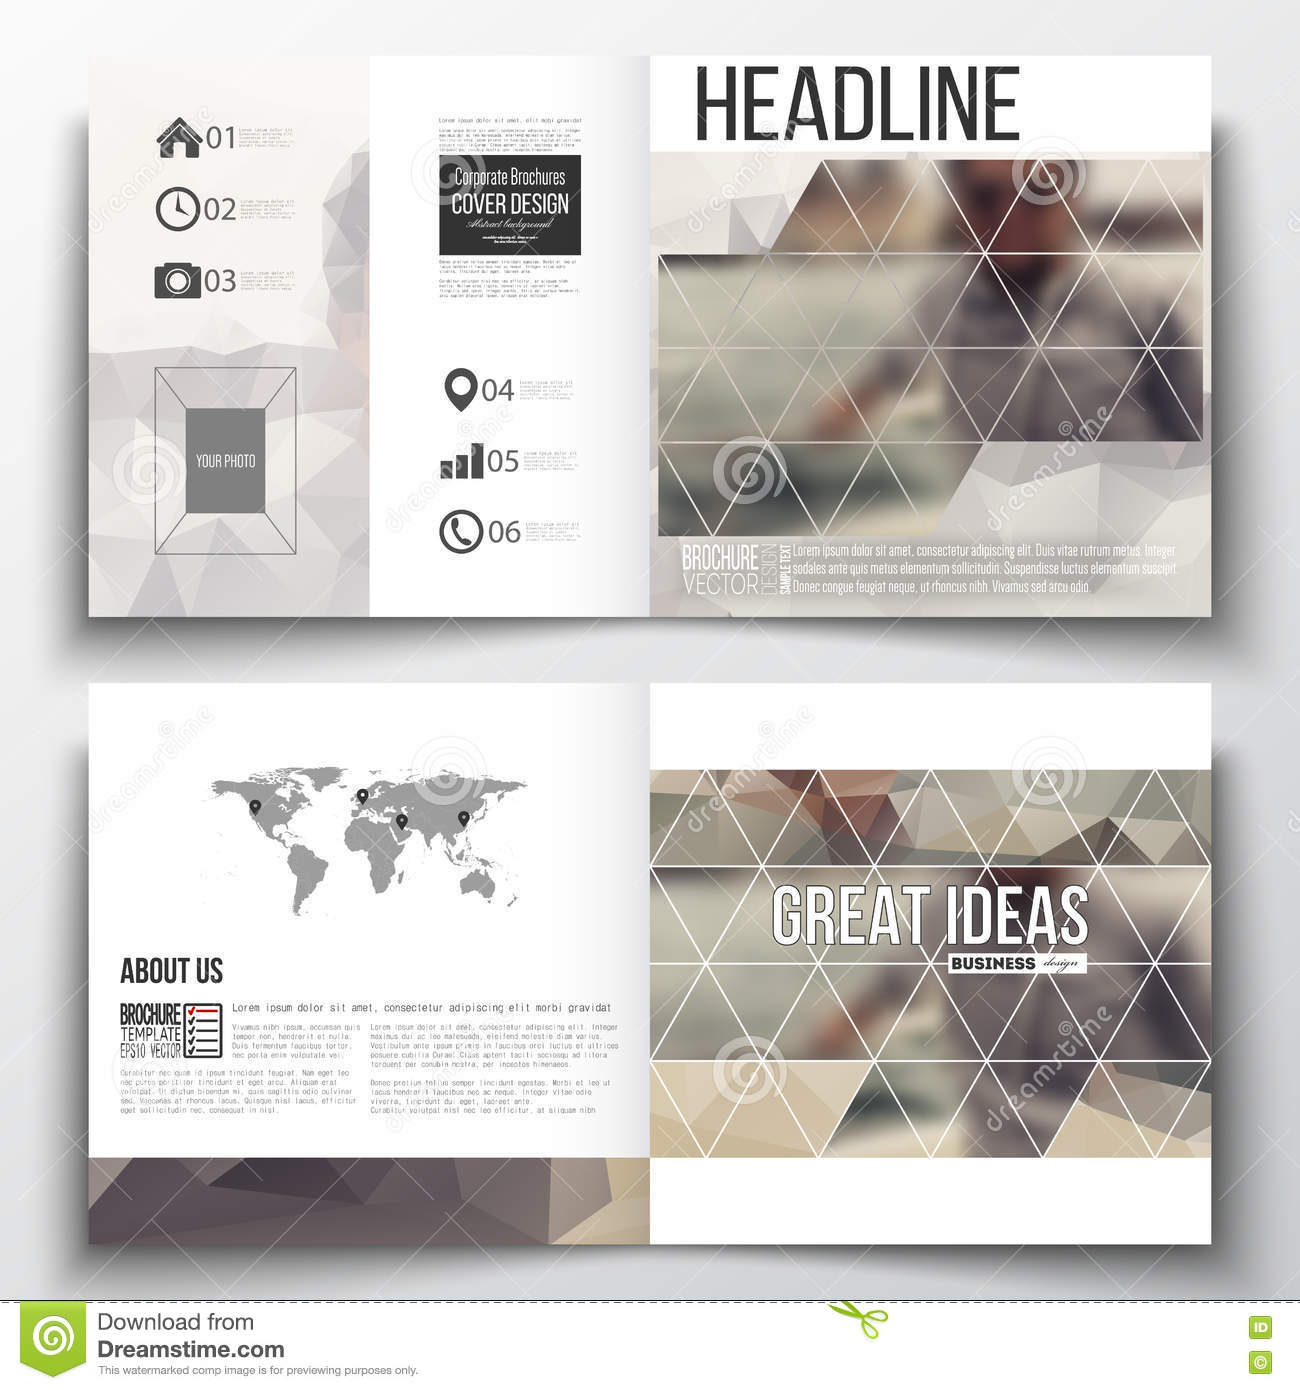 Beautiful 1.5 Inch Hexagon Template Small 101 Modern Resume Samples Round 1500 Claim Form Template 16 Birthday Invitation Templates Youthful 18 Year Old Resume Sample Coloured2 Page Resumes Samples Set Of Square Design Brochure Template. Polygonal Background ..